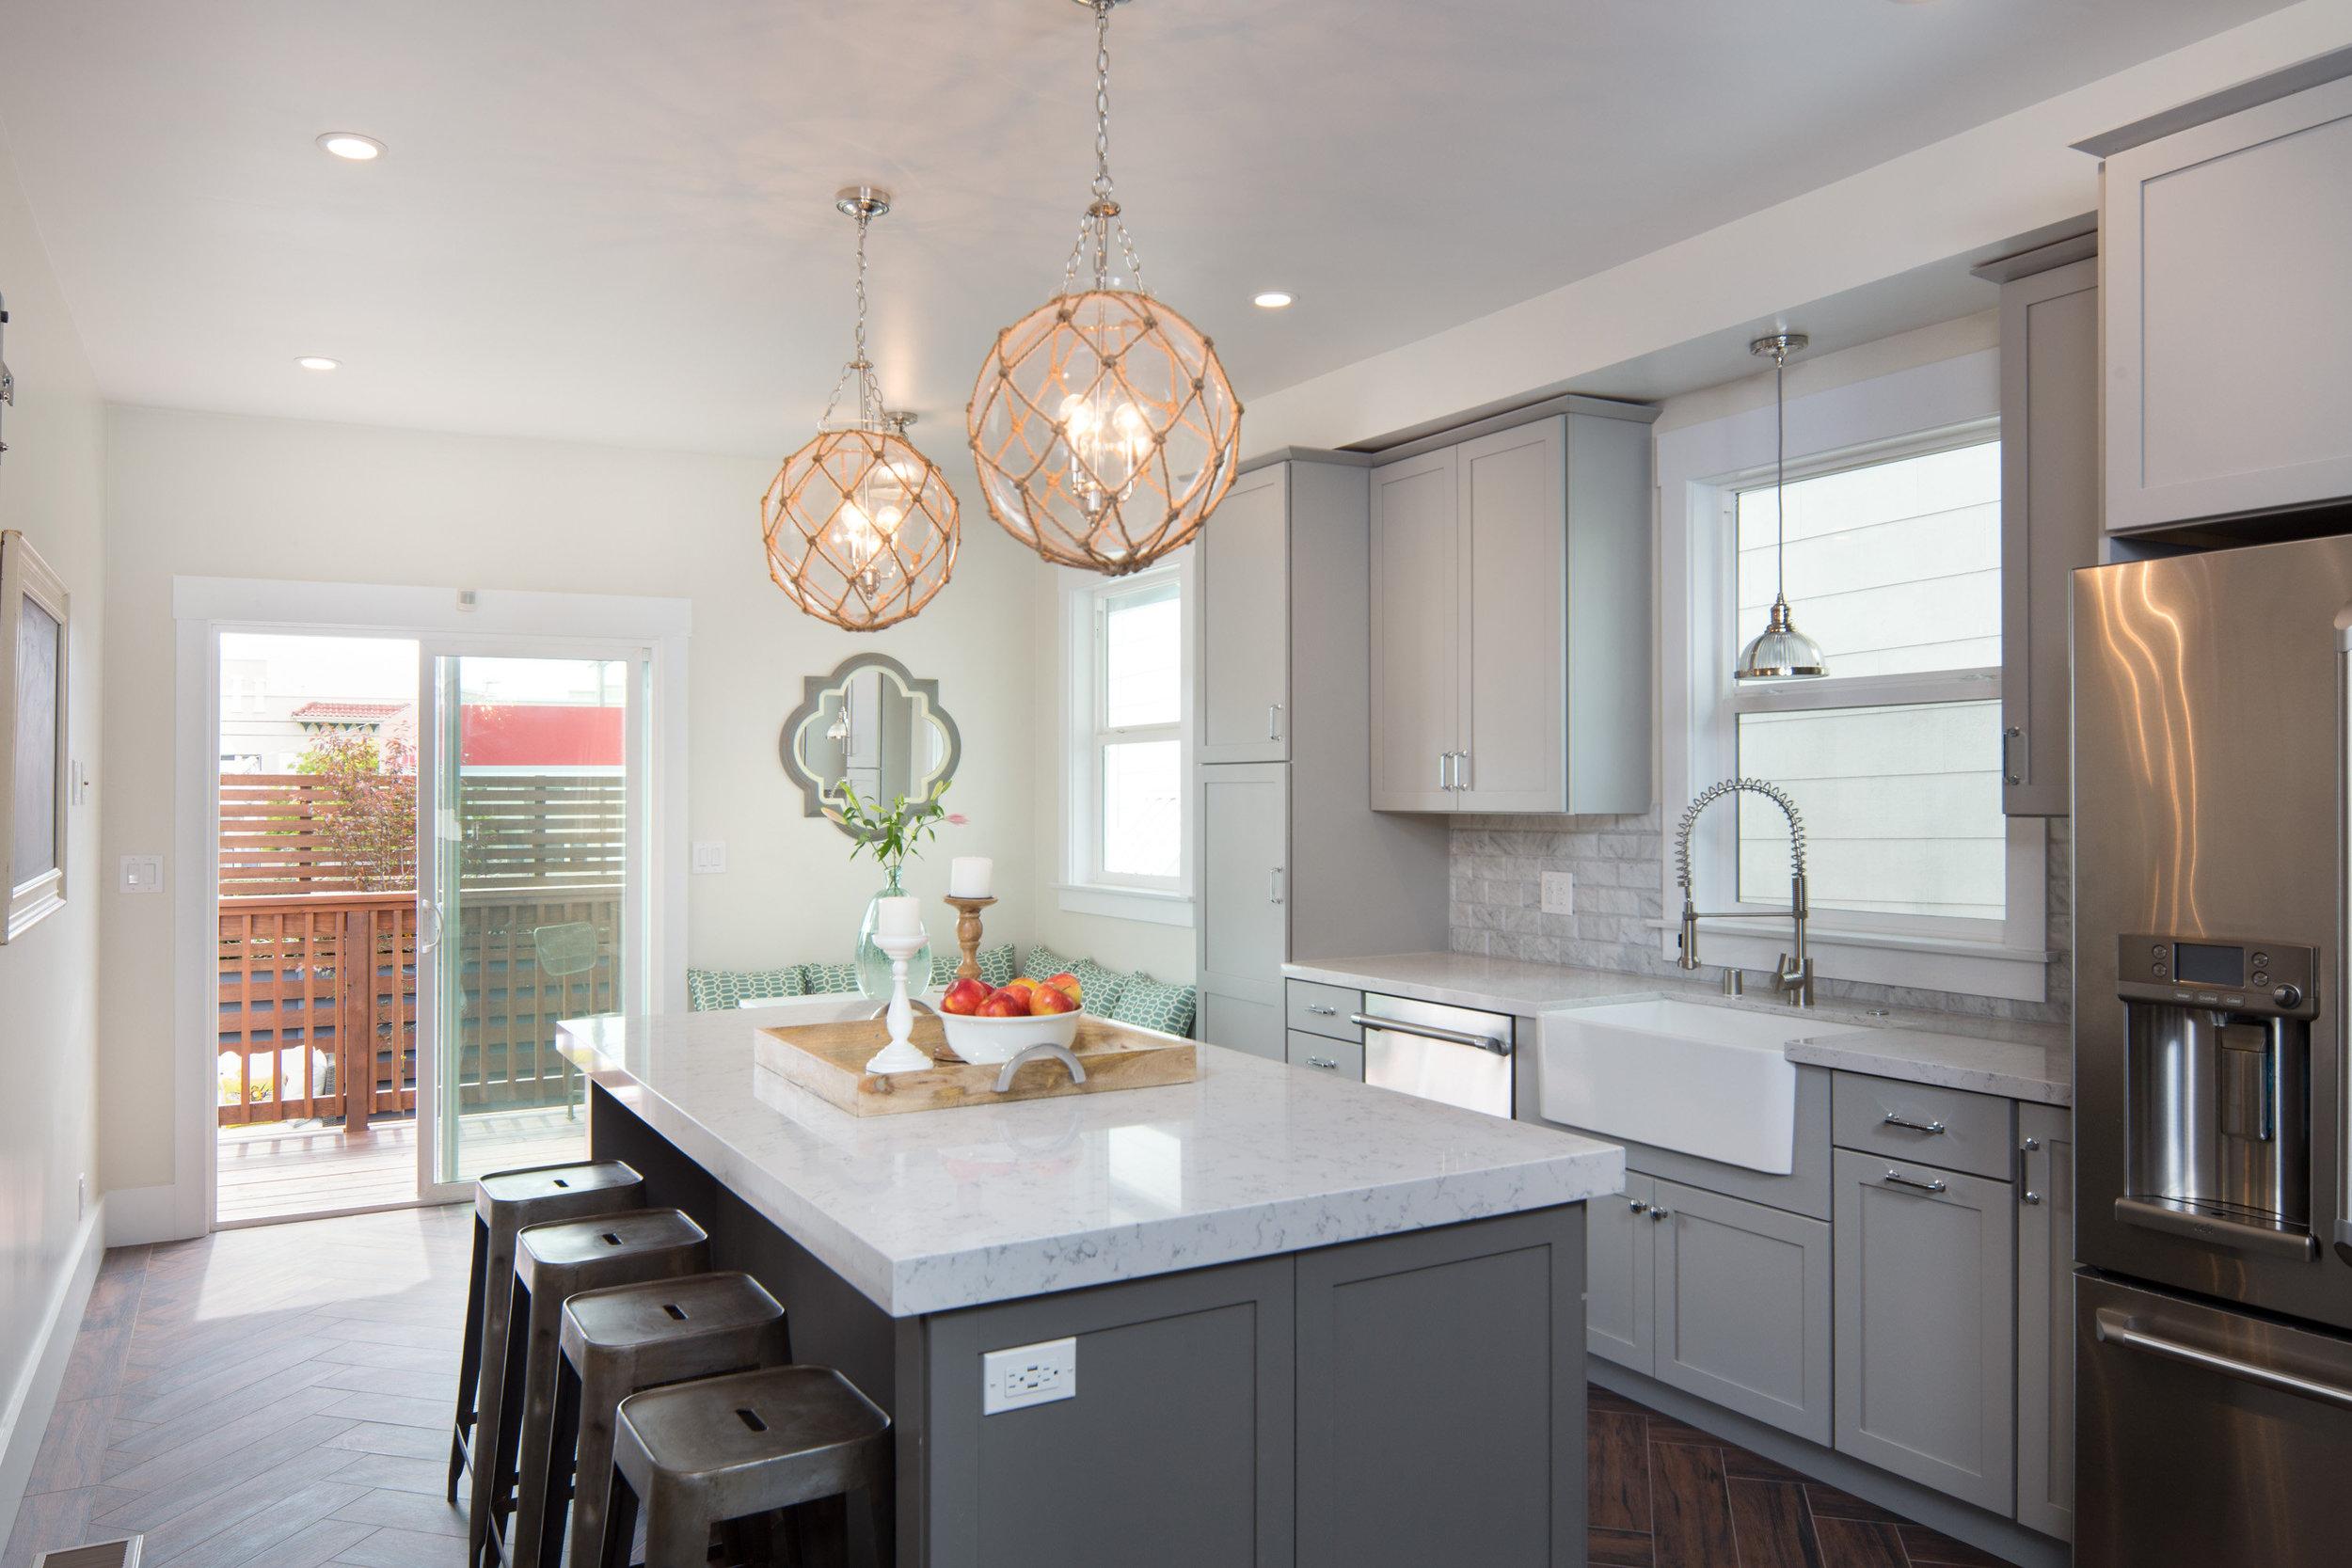 before and after kitchen renovation in Oakland, Glenview